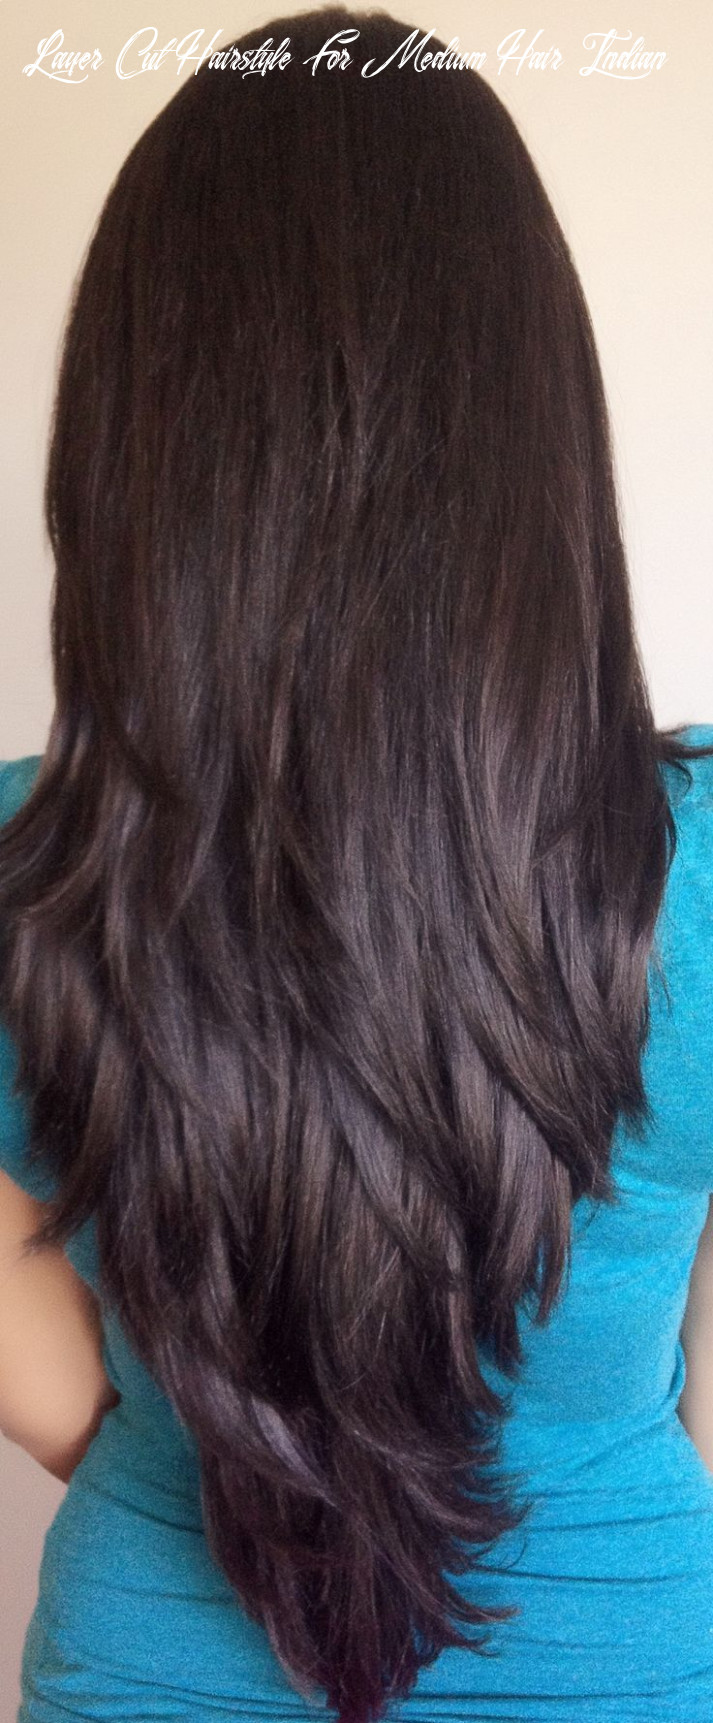 Pin on hair layer cut hairstyle for medium hair indian